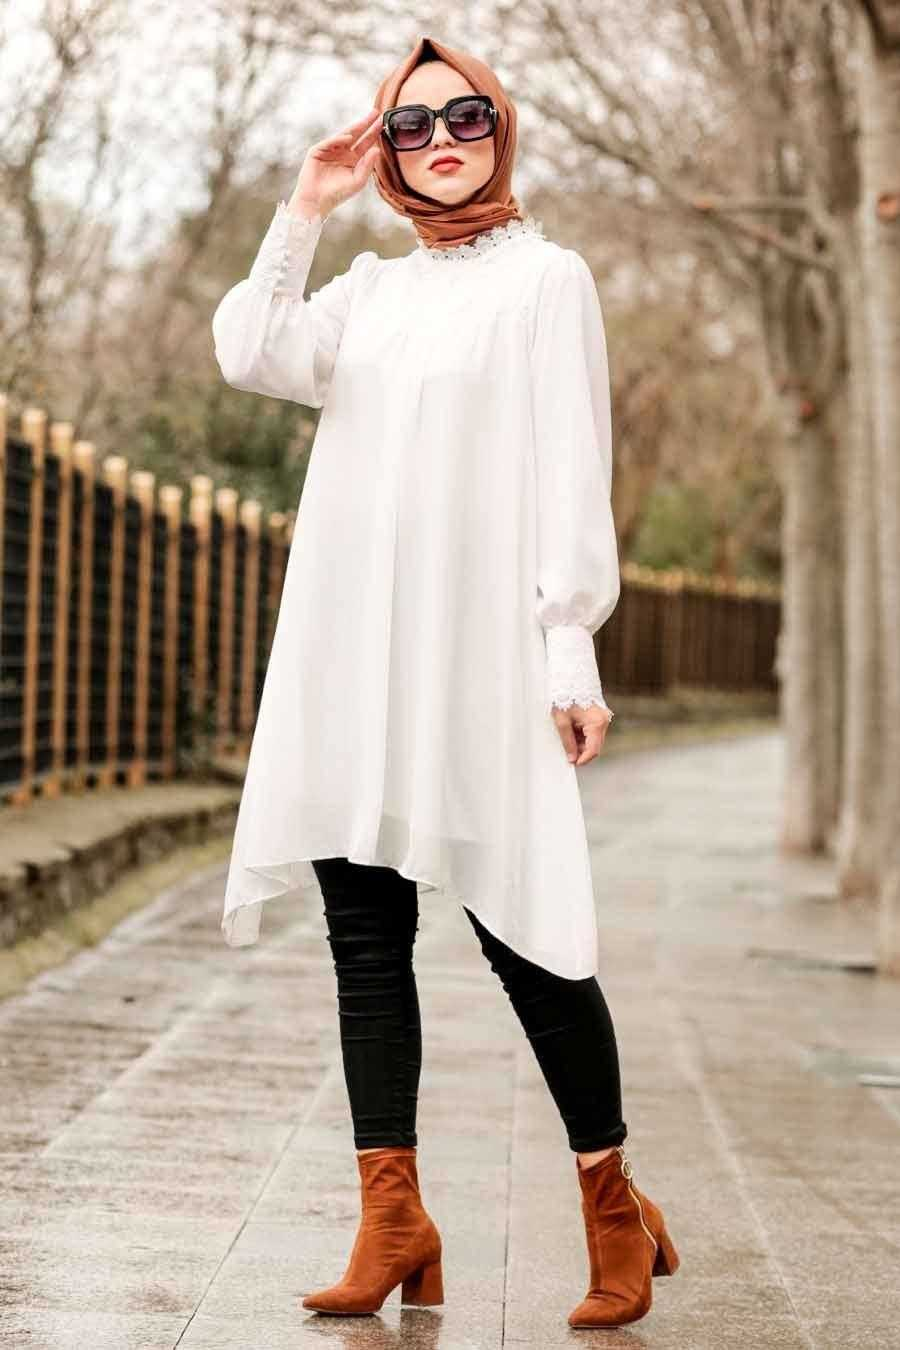 Nayla Collection Dantelli Tesettür Tunik Modelleri